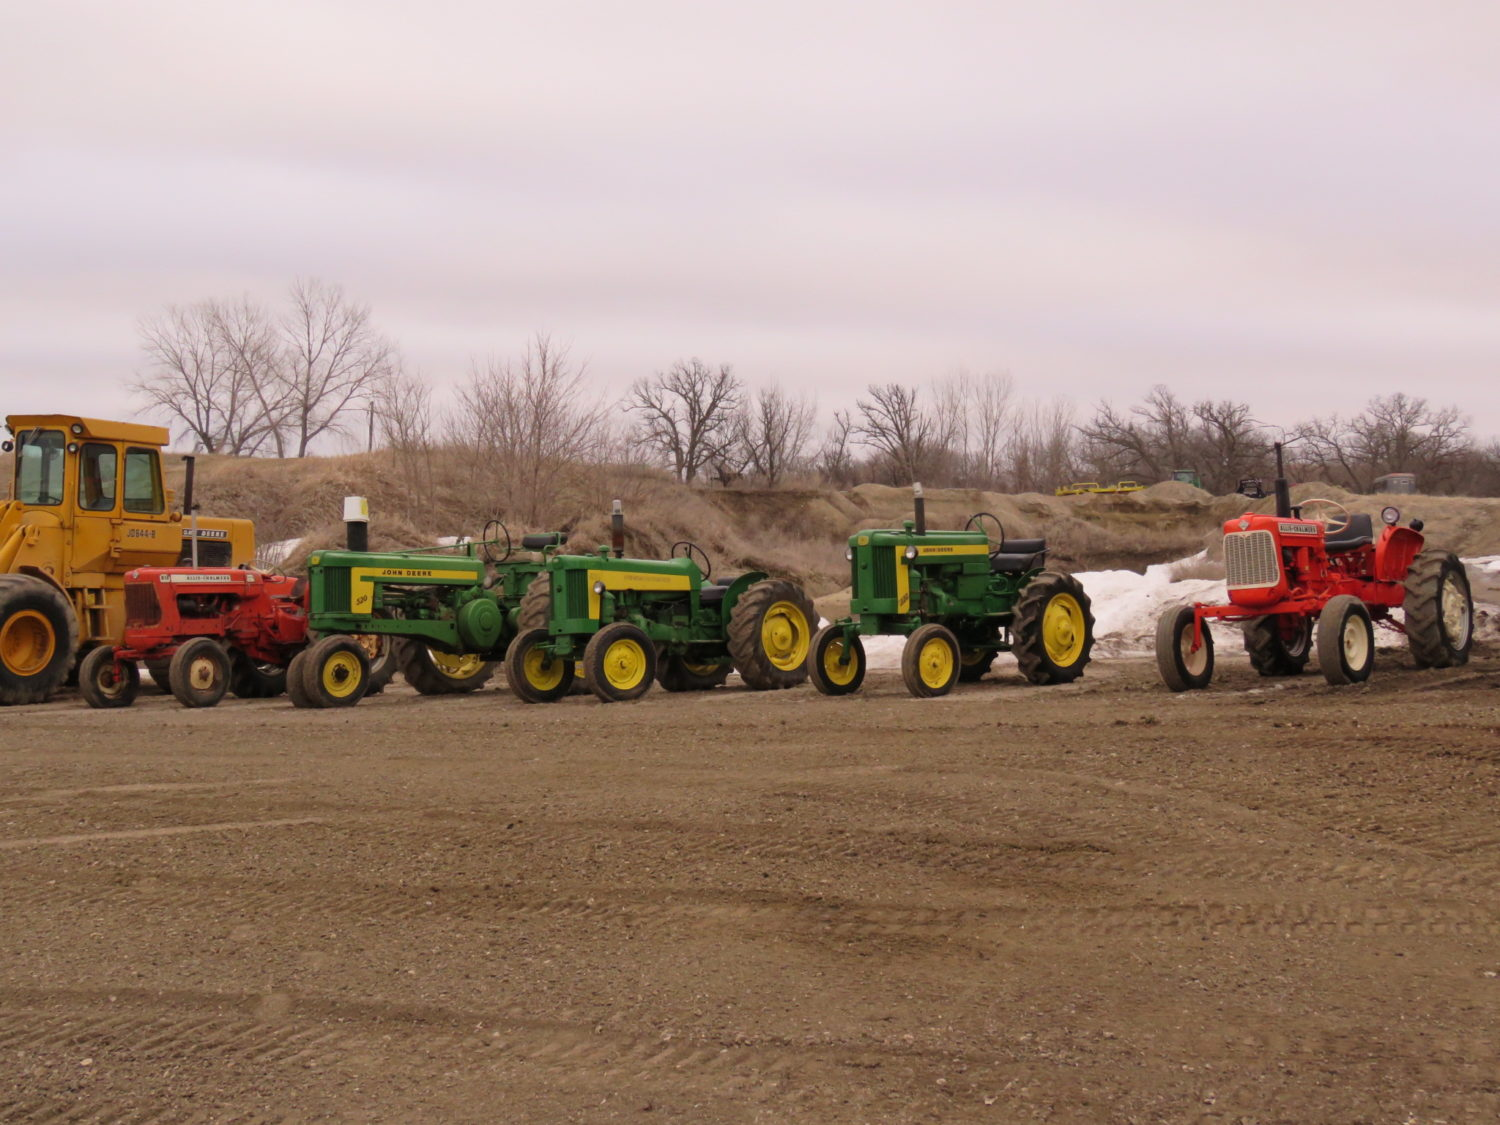 Day 1- Antique Tractors, Farm Equipment, Toys, & More- The James Graham Collection - image 5